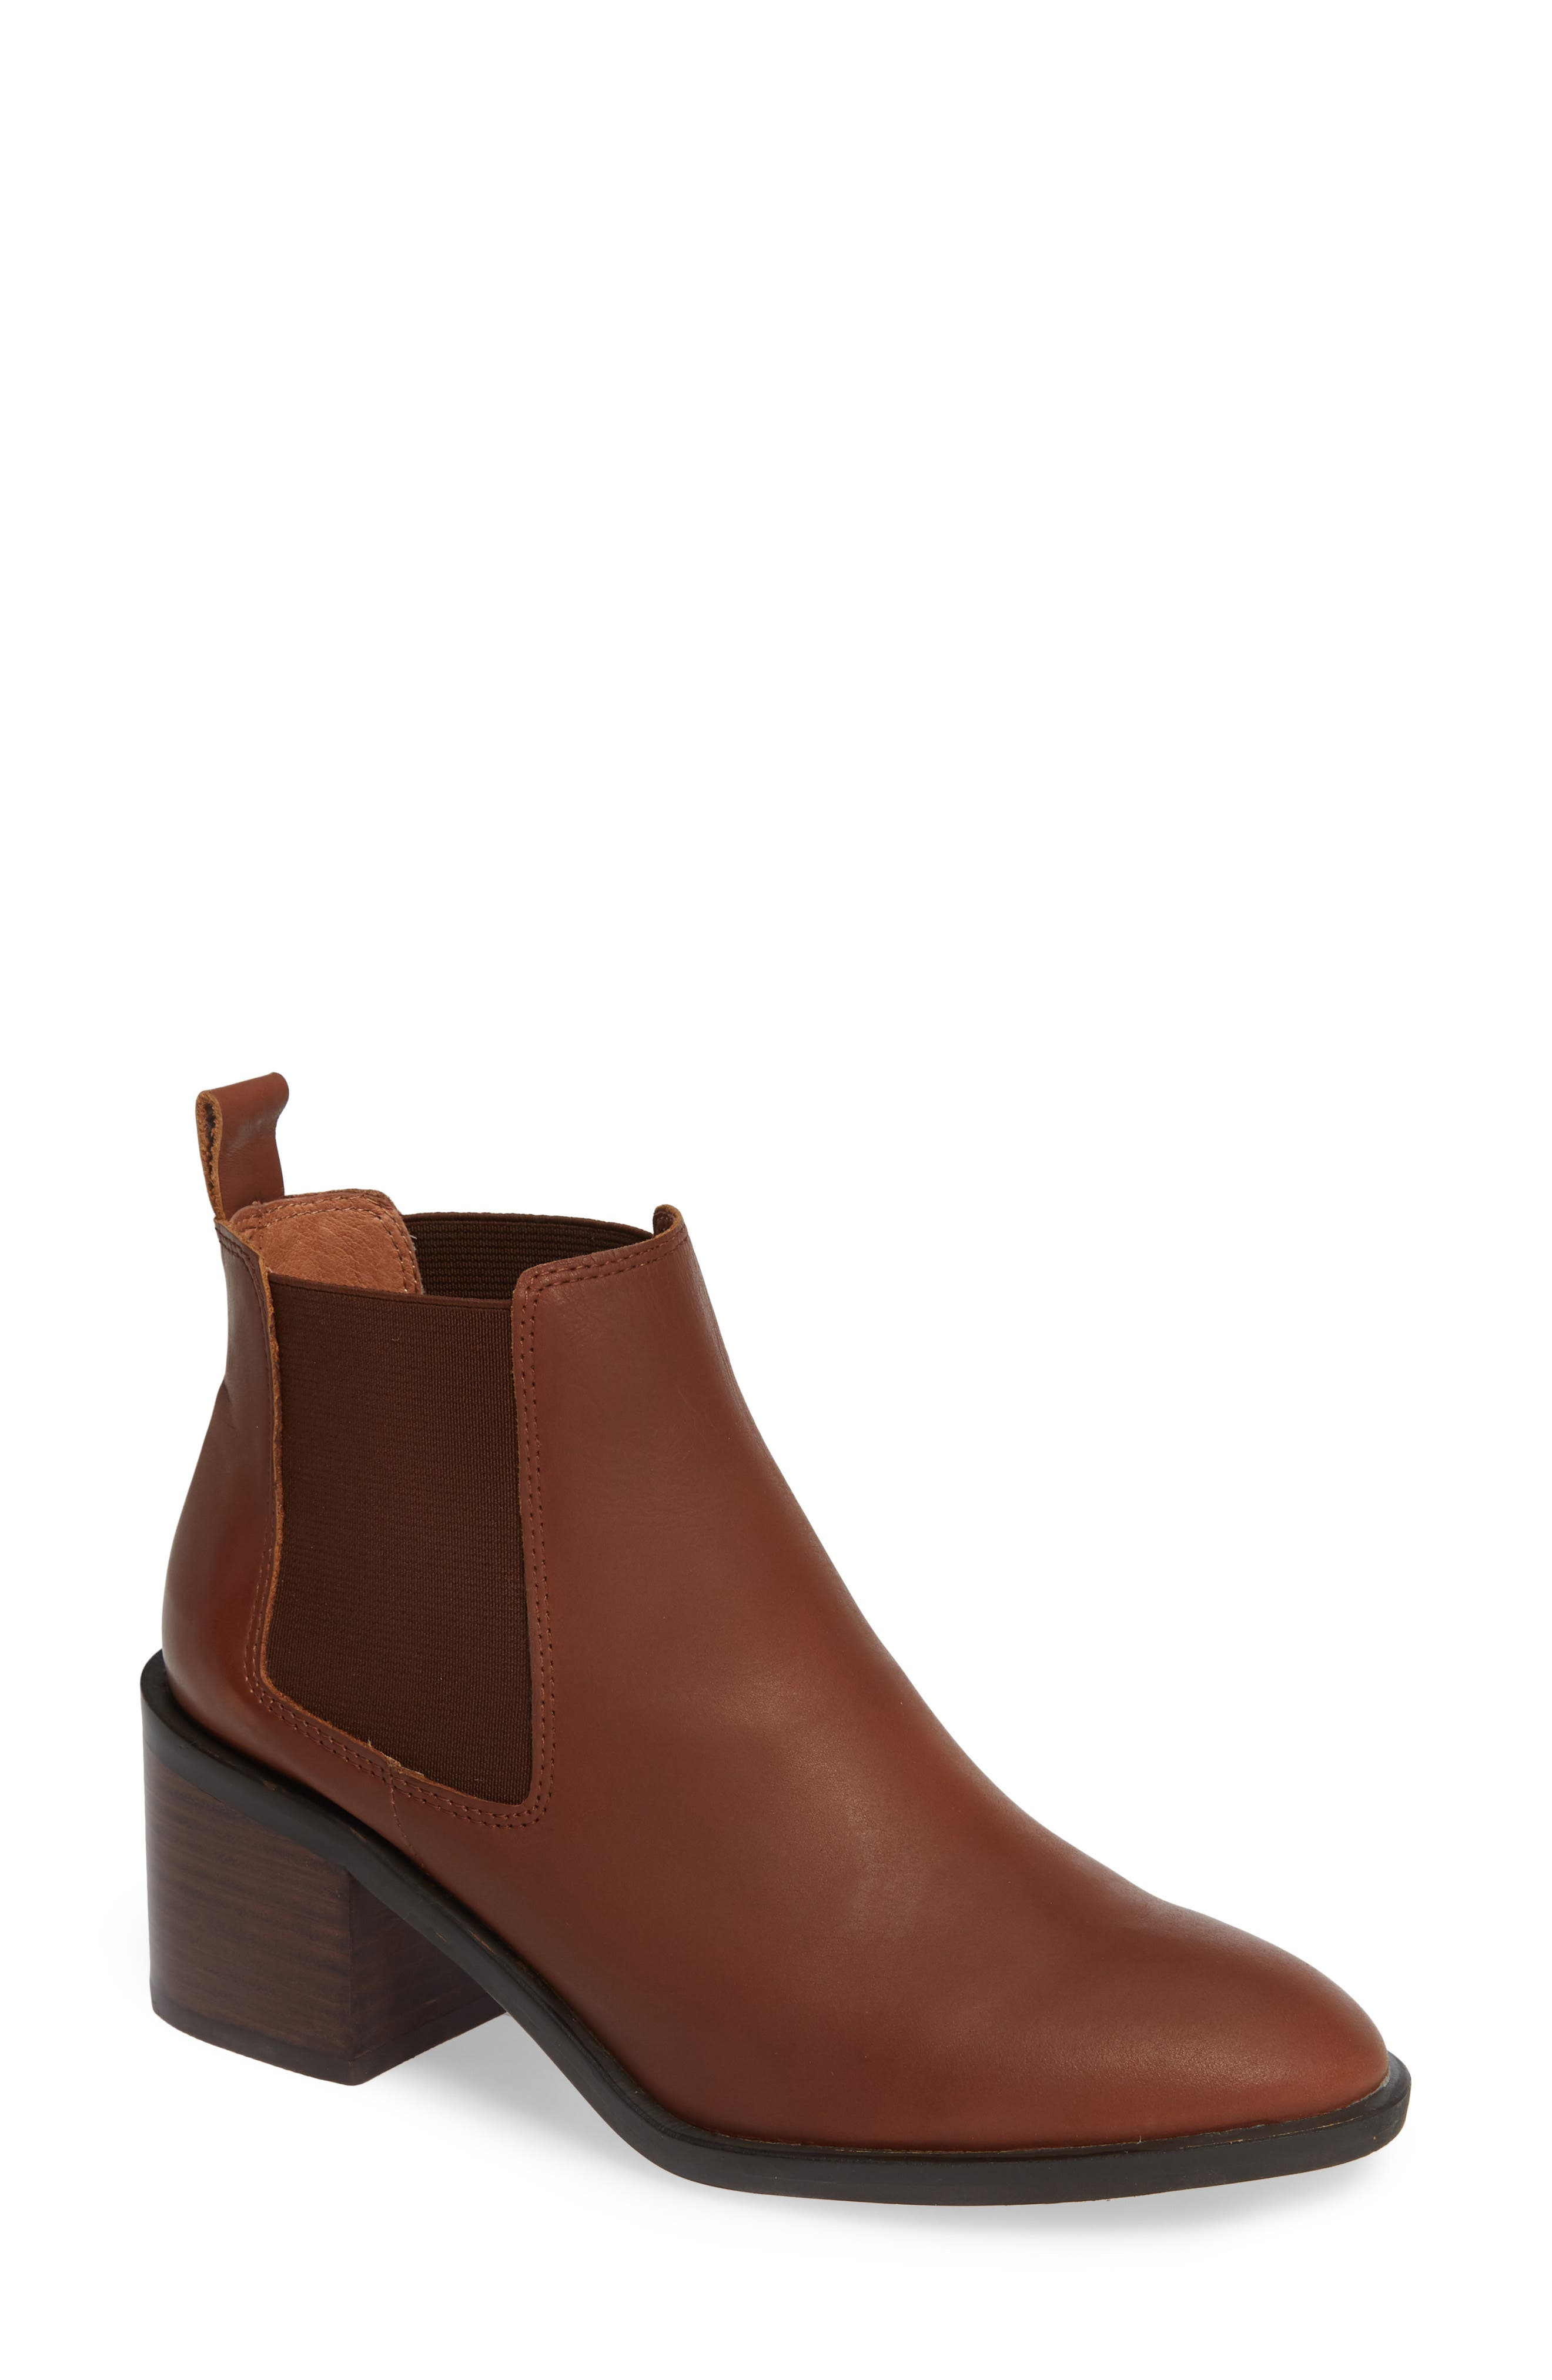 ALIAS MAE Galis Bootie in Tan Leather